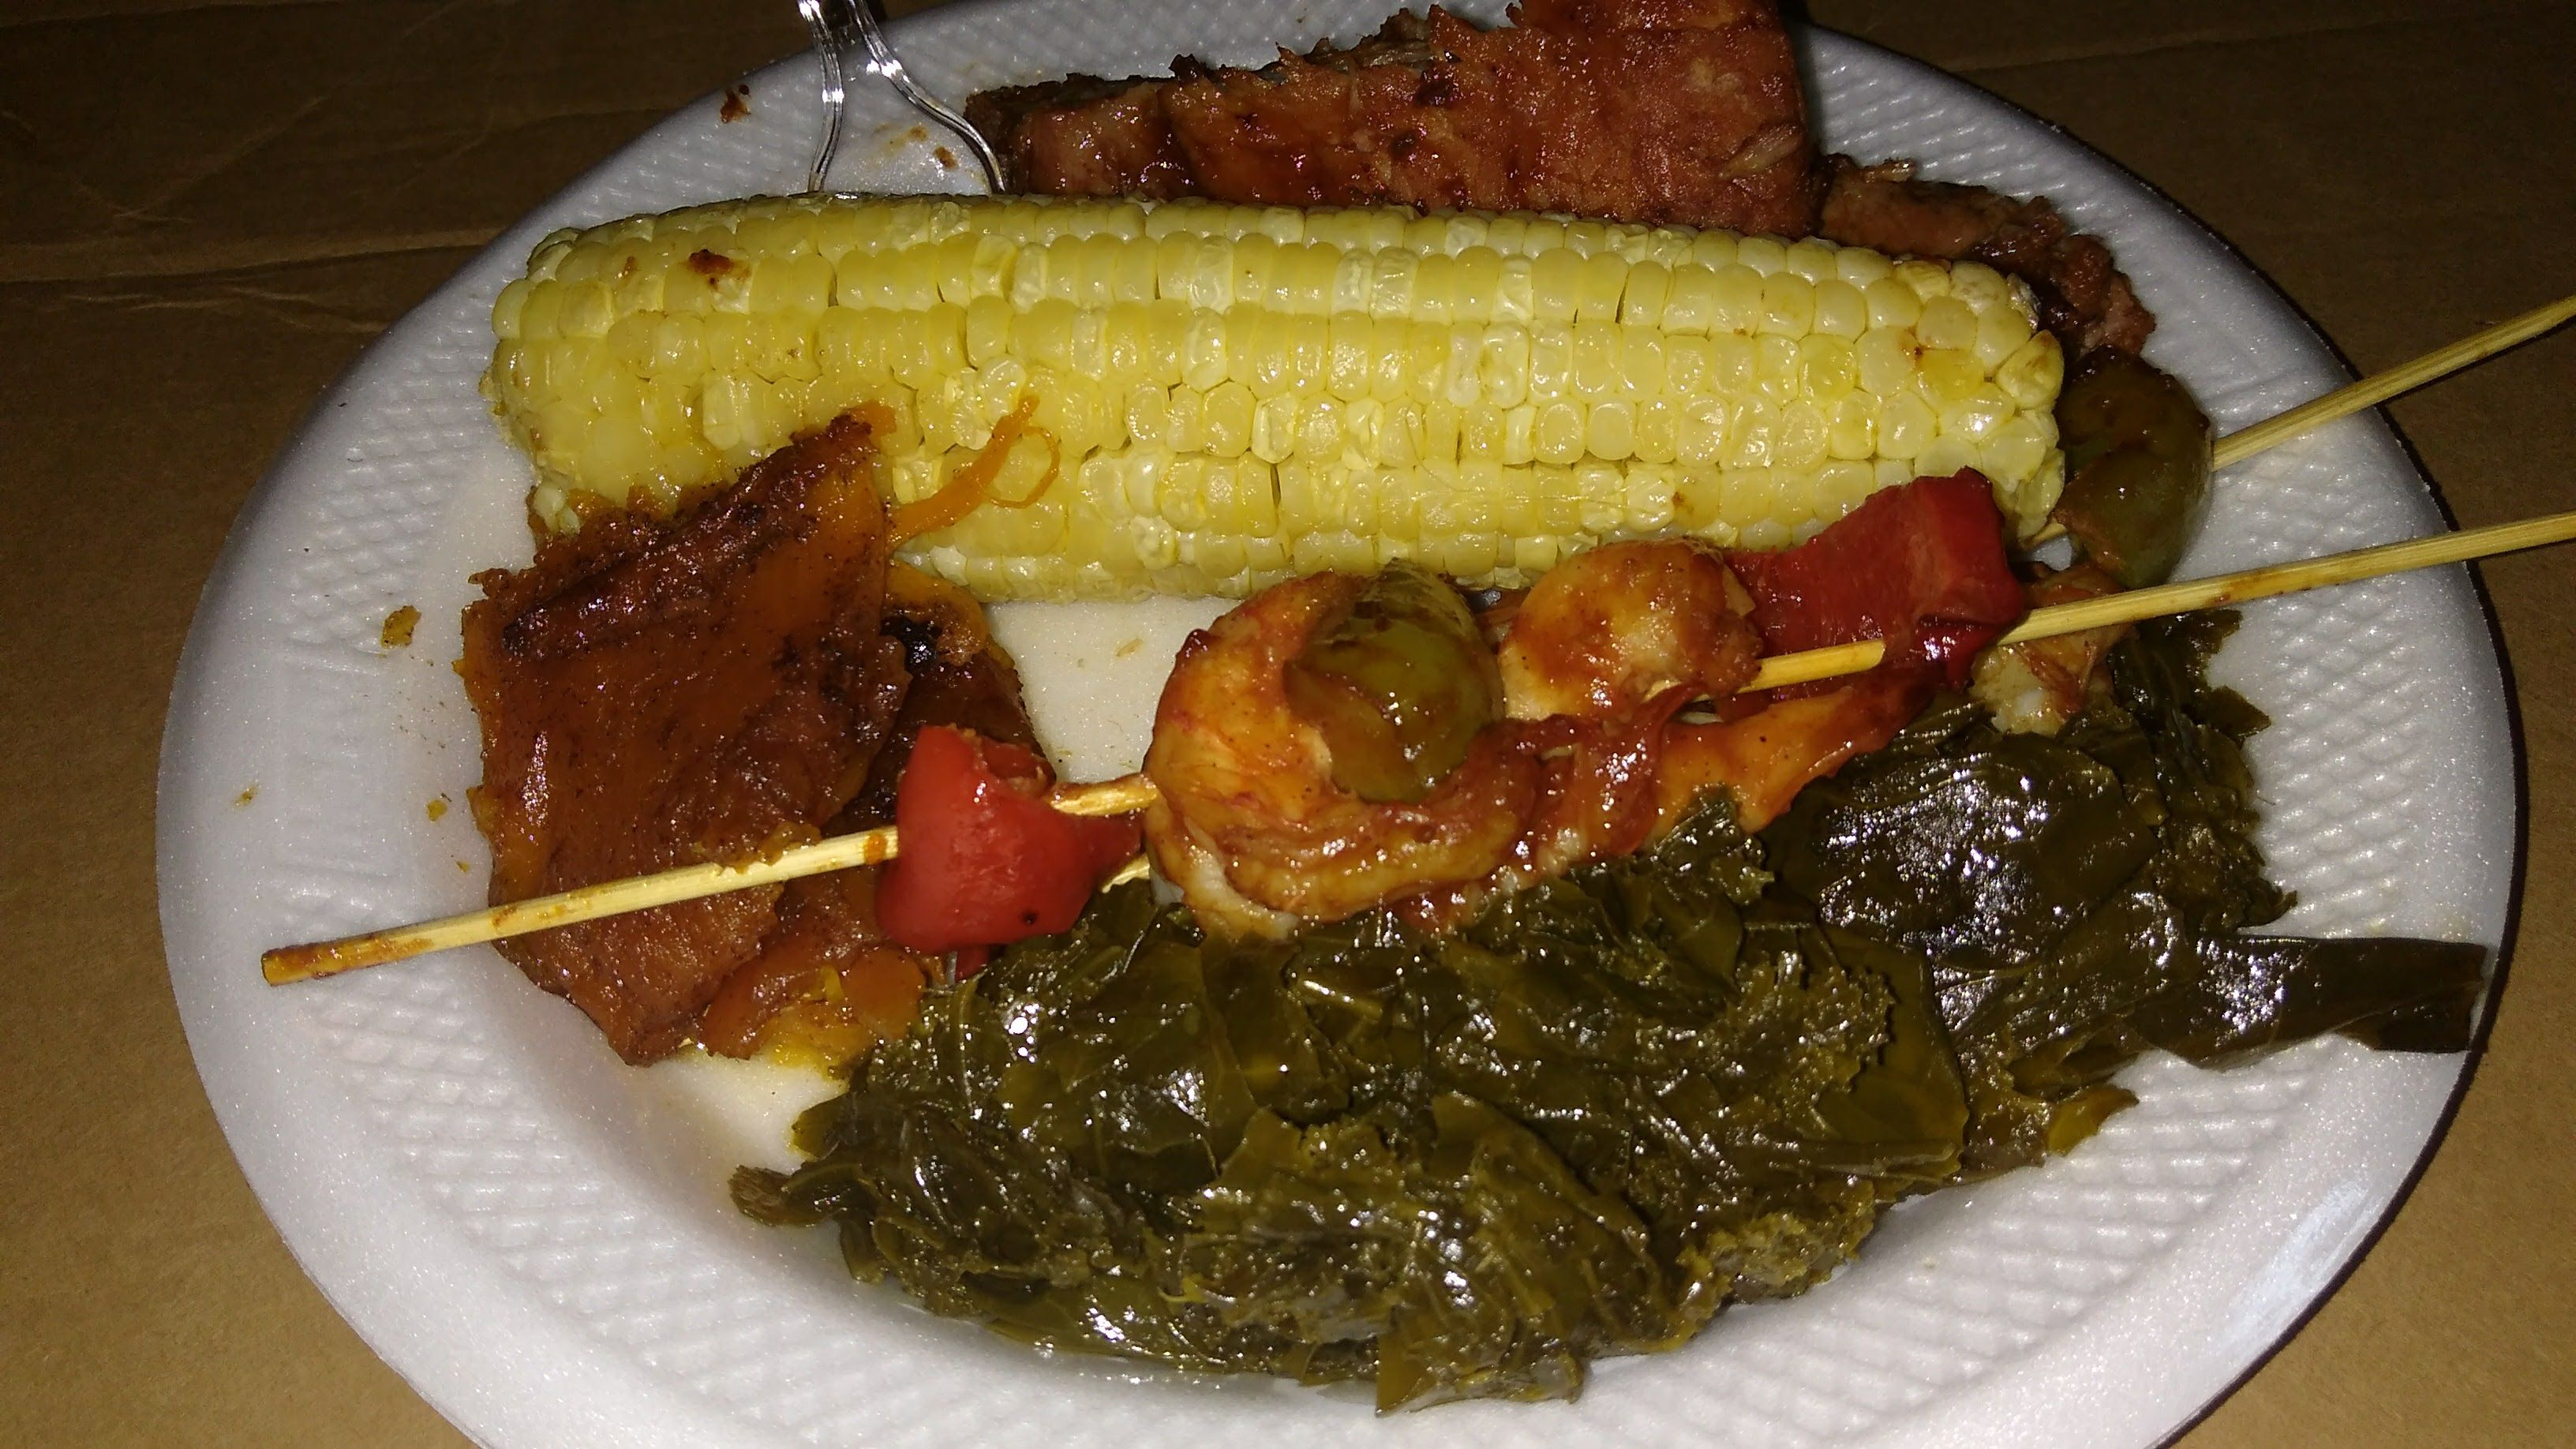 #ShrimpVegetable #shishkebab with #collardgreens #yams and #corn - https://drewrynewsnetwork.com/forum/affiliate-marketing/content-marketing-SEO